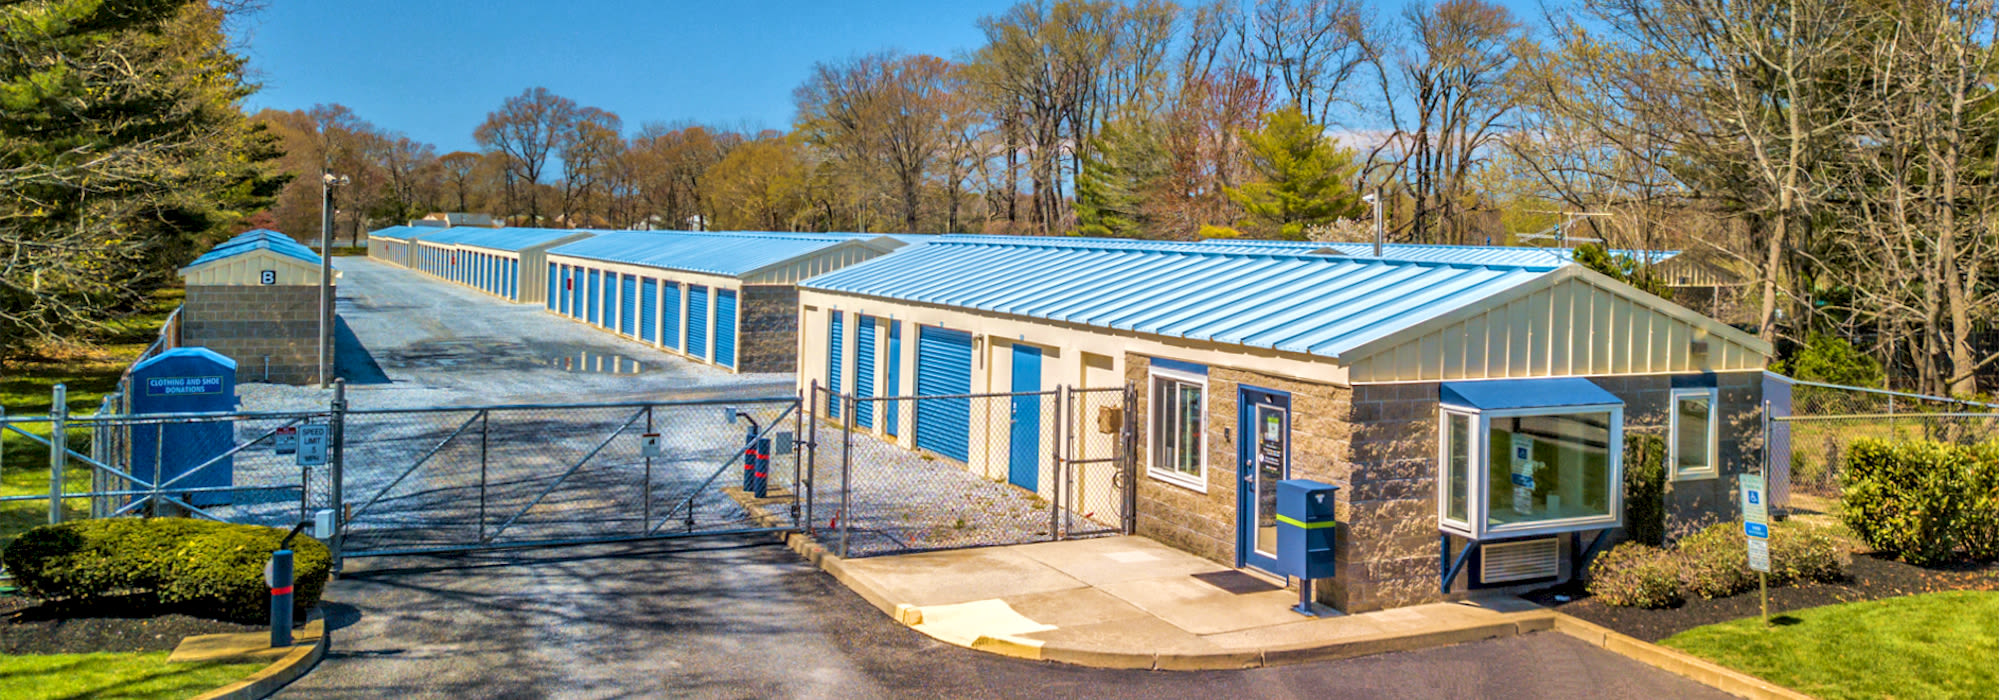 A Safe Keeping Self Storage in North Cape May, NJ